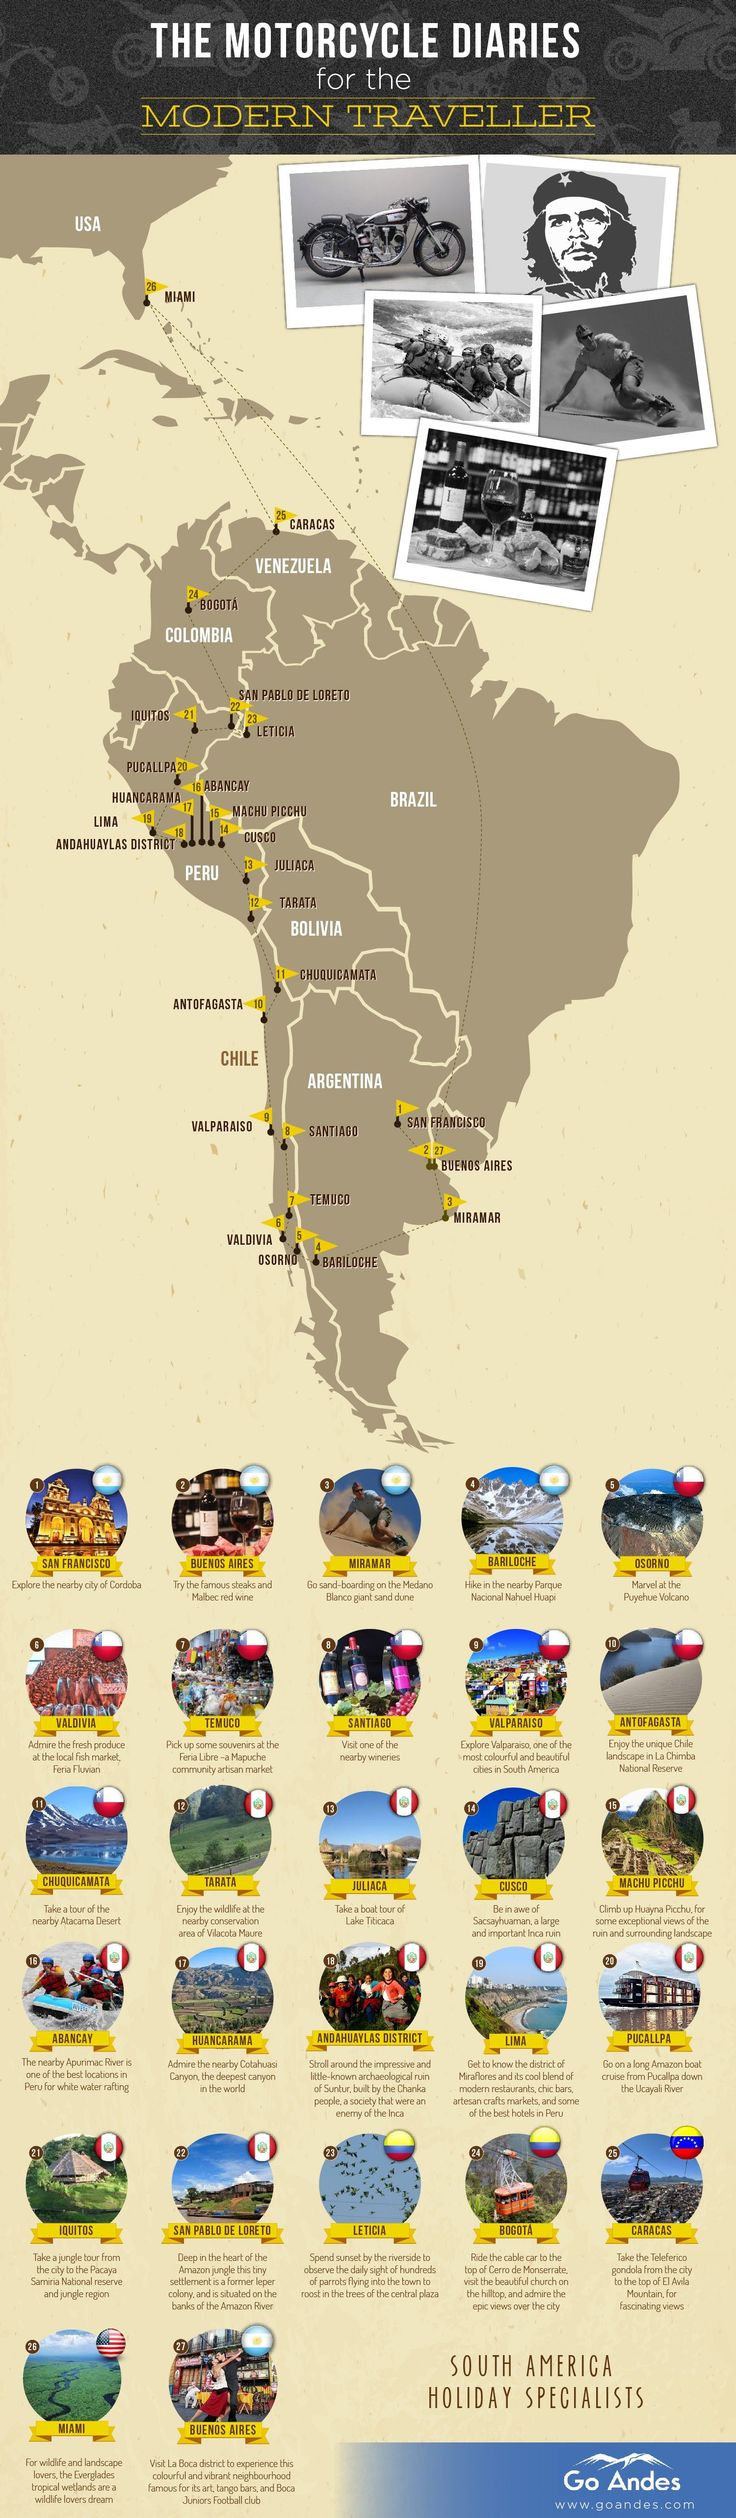 Here's a map of Che's travels through South America